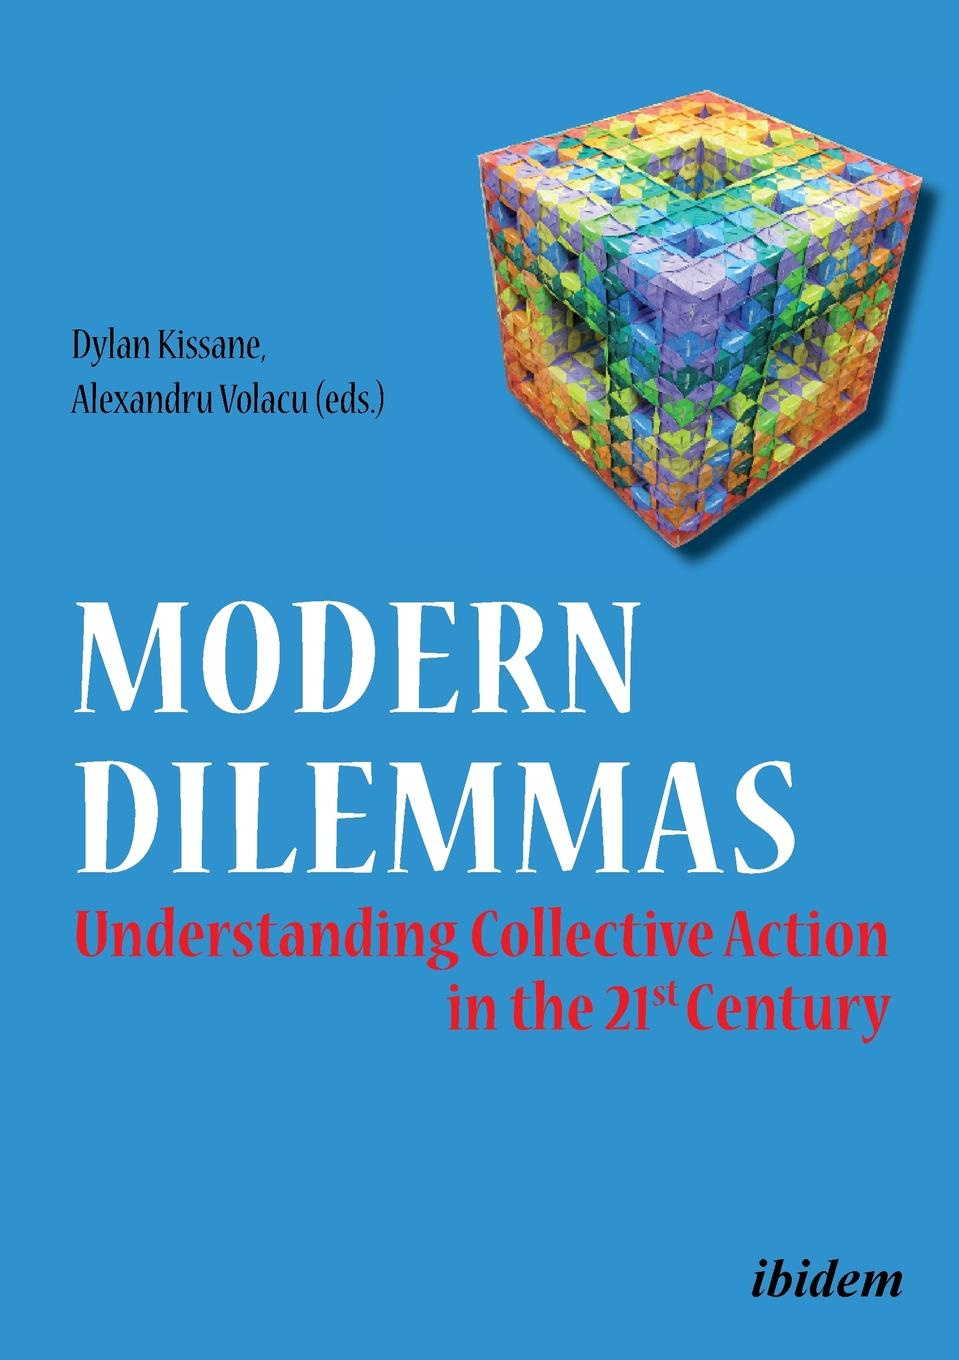 Jozef A. Kosc, Panagiotis Barkas, Mirijam Boehme Modern Dilemmas. Understanding Collective Action in the 21st Century. axel honneth the i in we studies in the theory of recognition